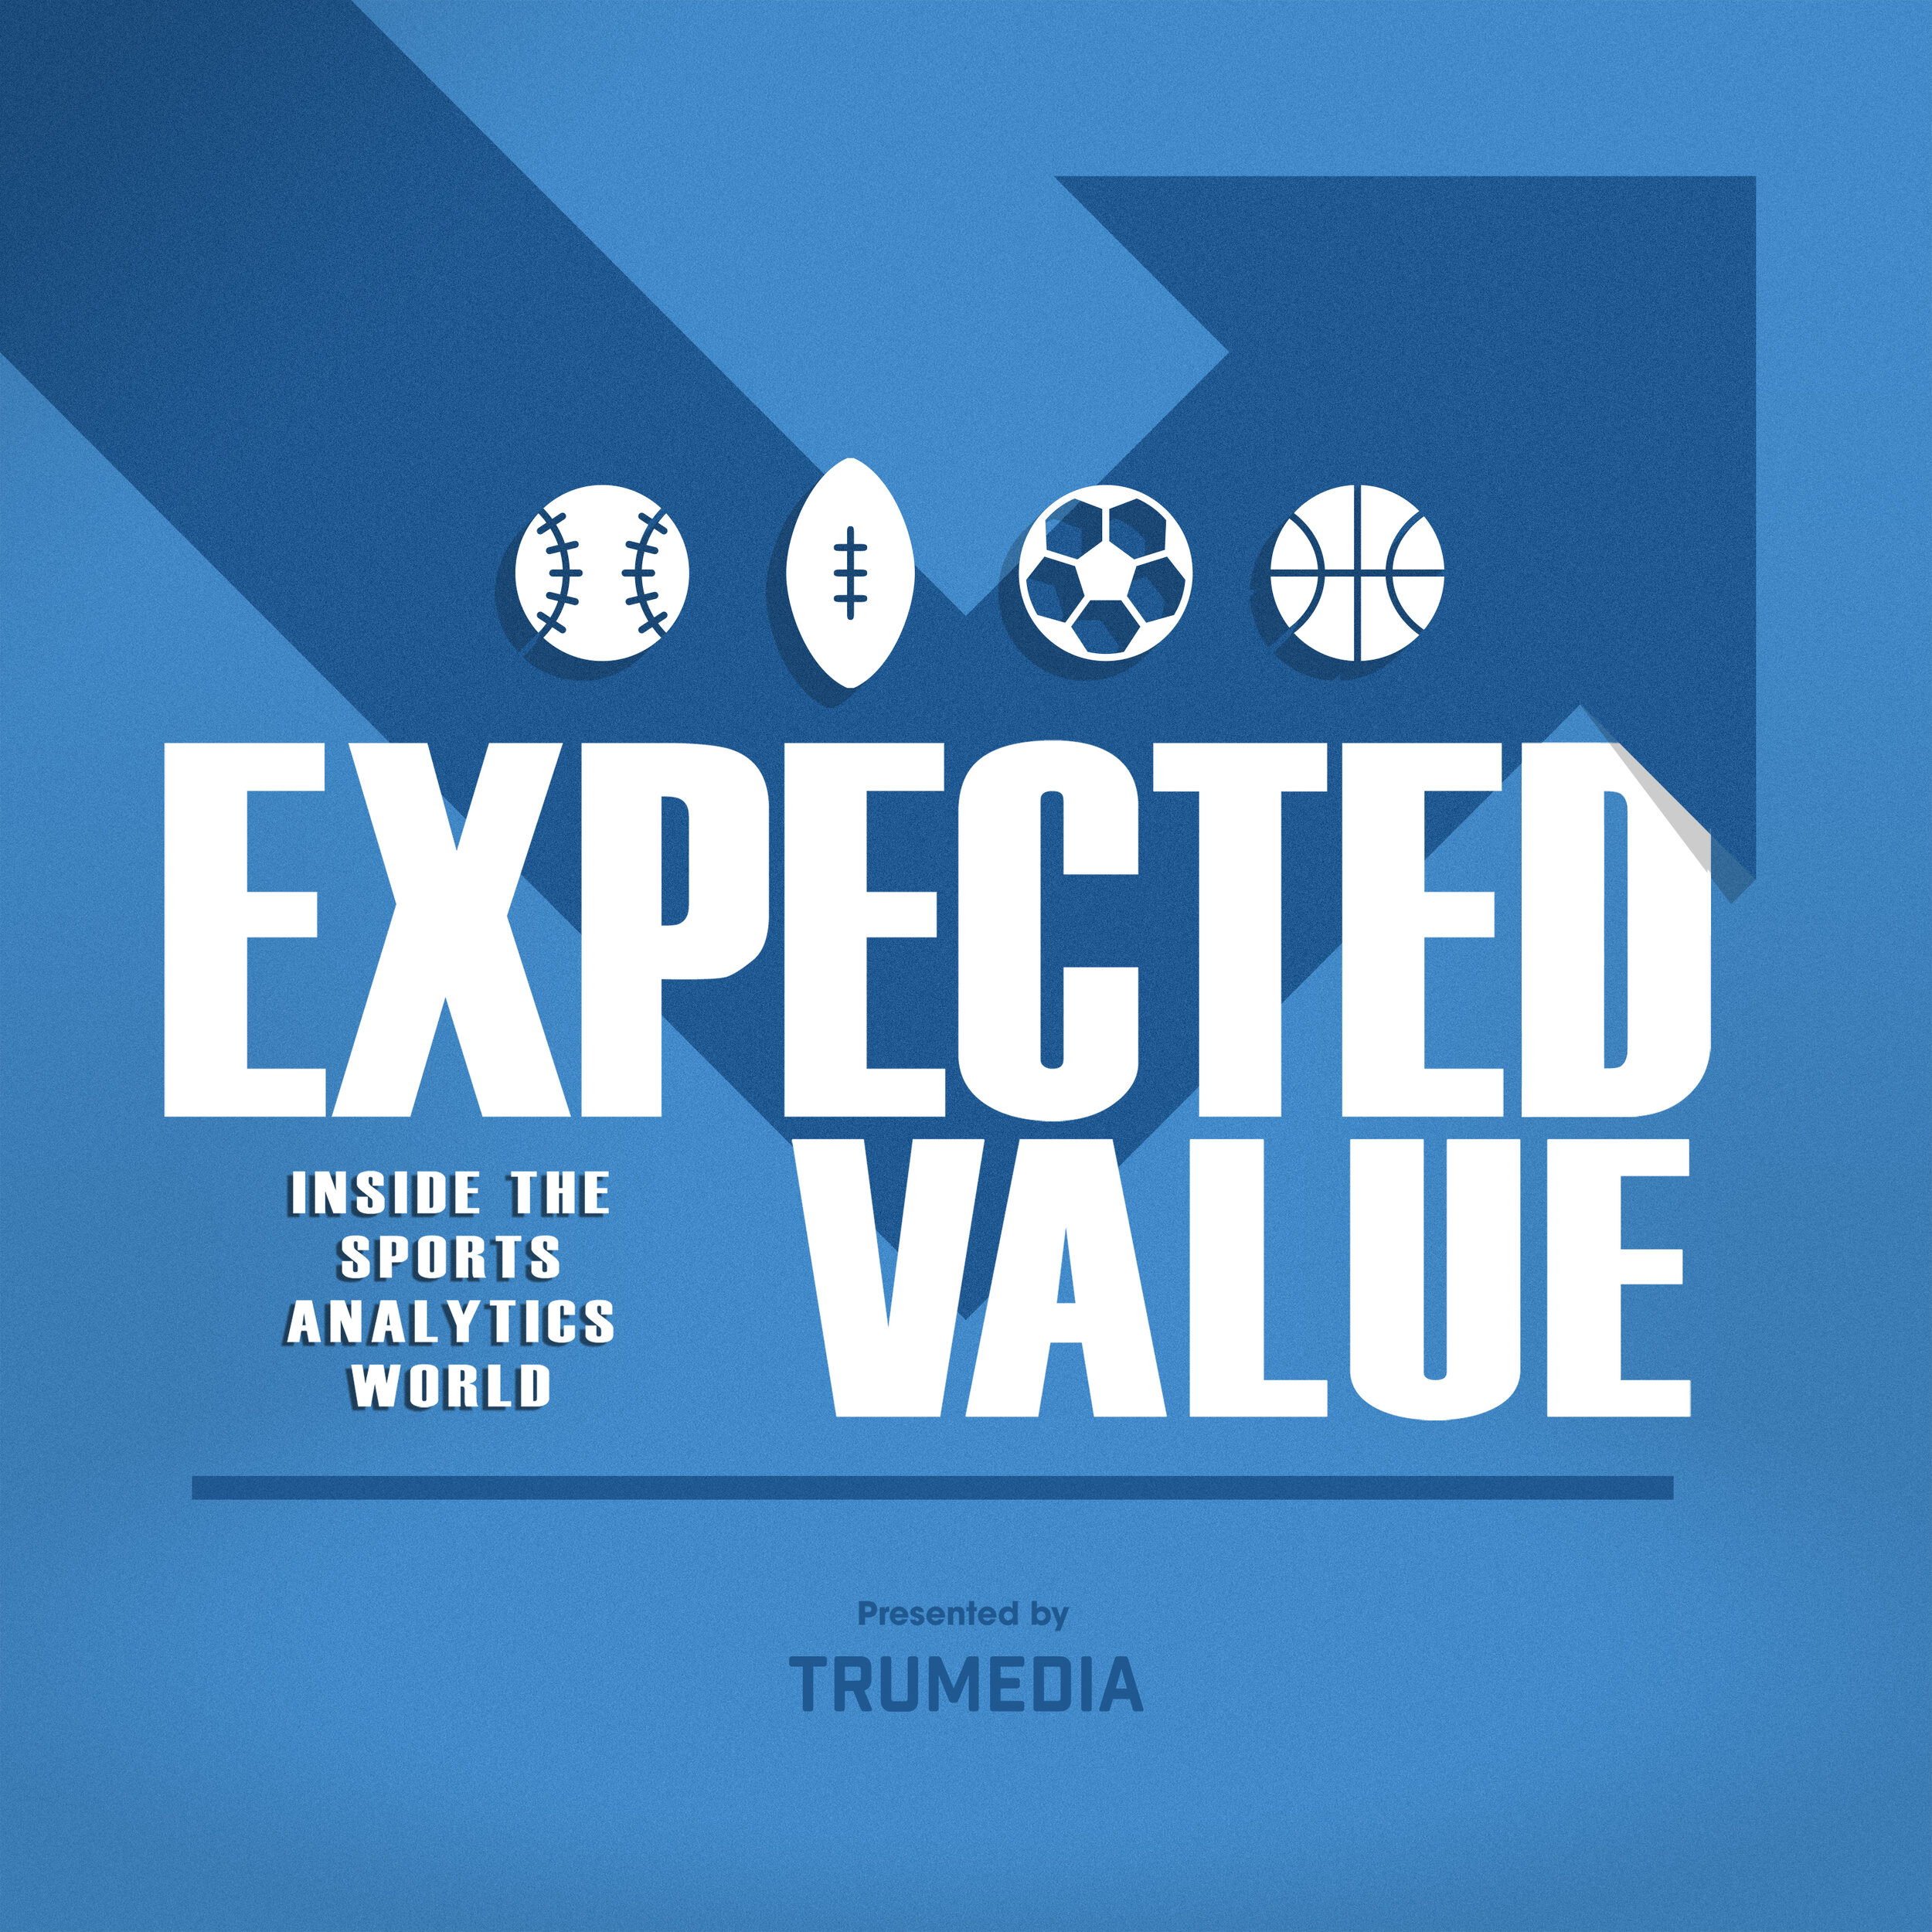 Expected Value podcast - Go inside the sports analytics world, by listening to employees of teams, media and other organizations talk about what they do, how they do it, and how they got there.Listen and subscribe on Apple Podcasts, Spotify, Google Podcasts, Stitcher, Soundcloud, TuneIn, or wherever you get your podcasts.